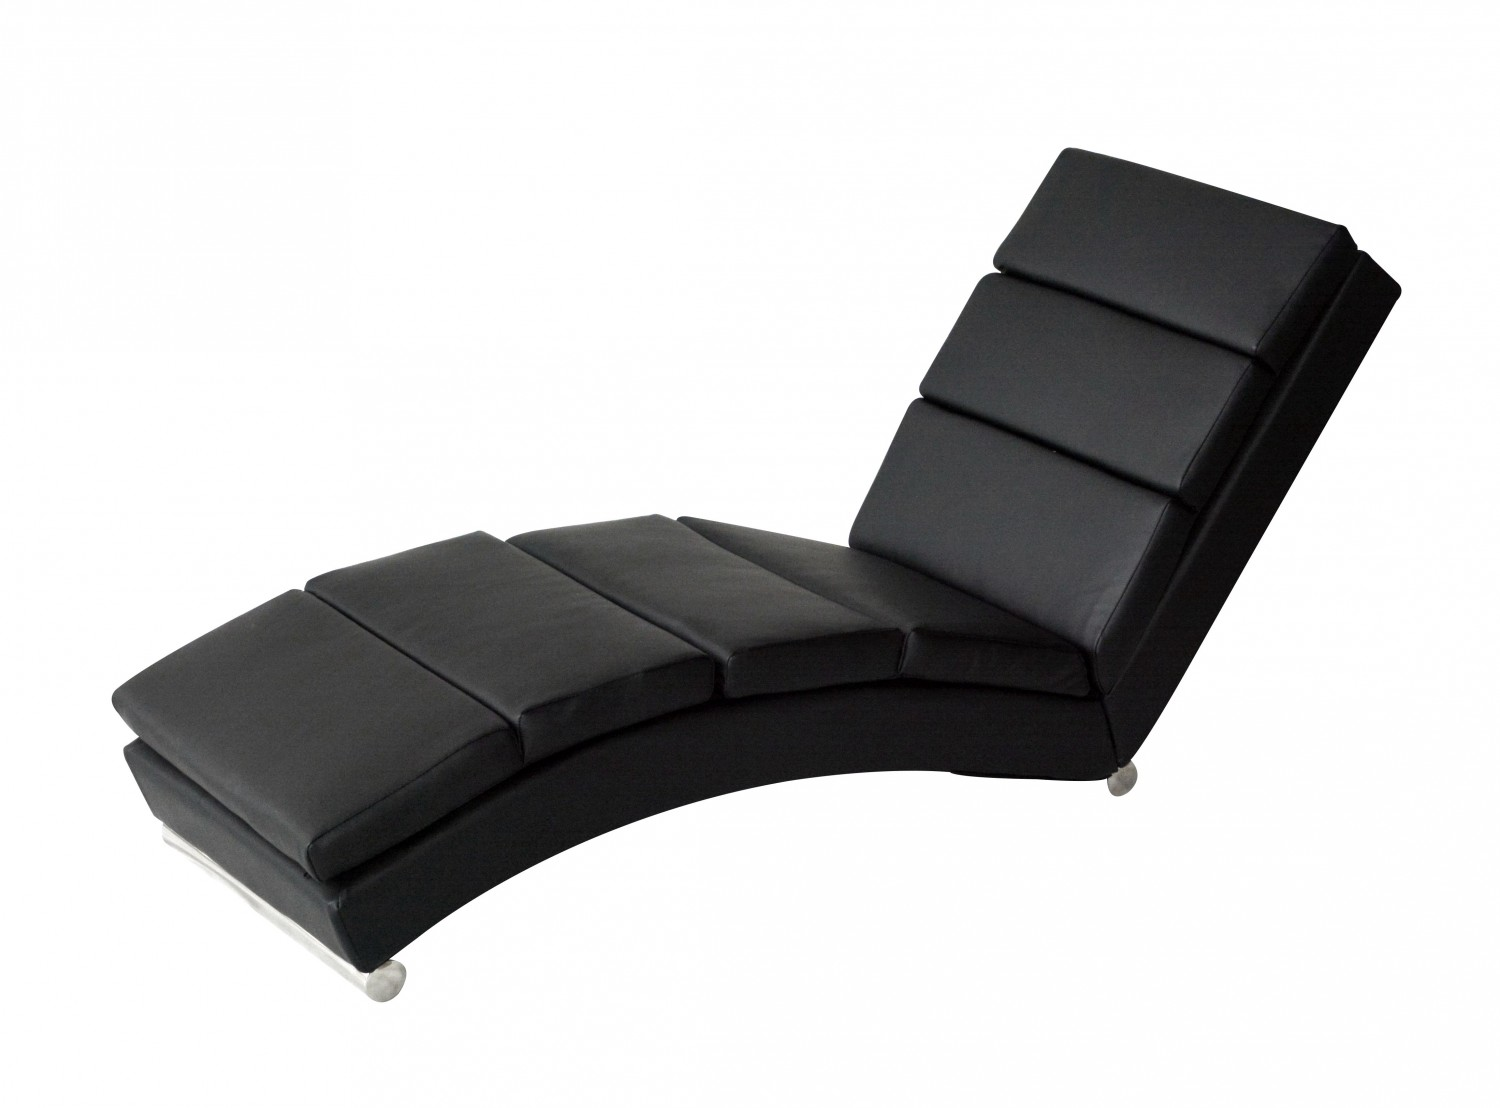 Chaiselounge Relaxsessel